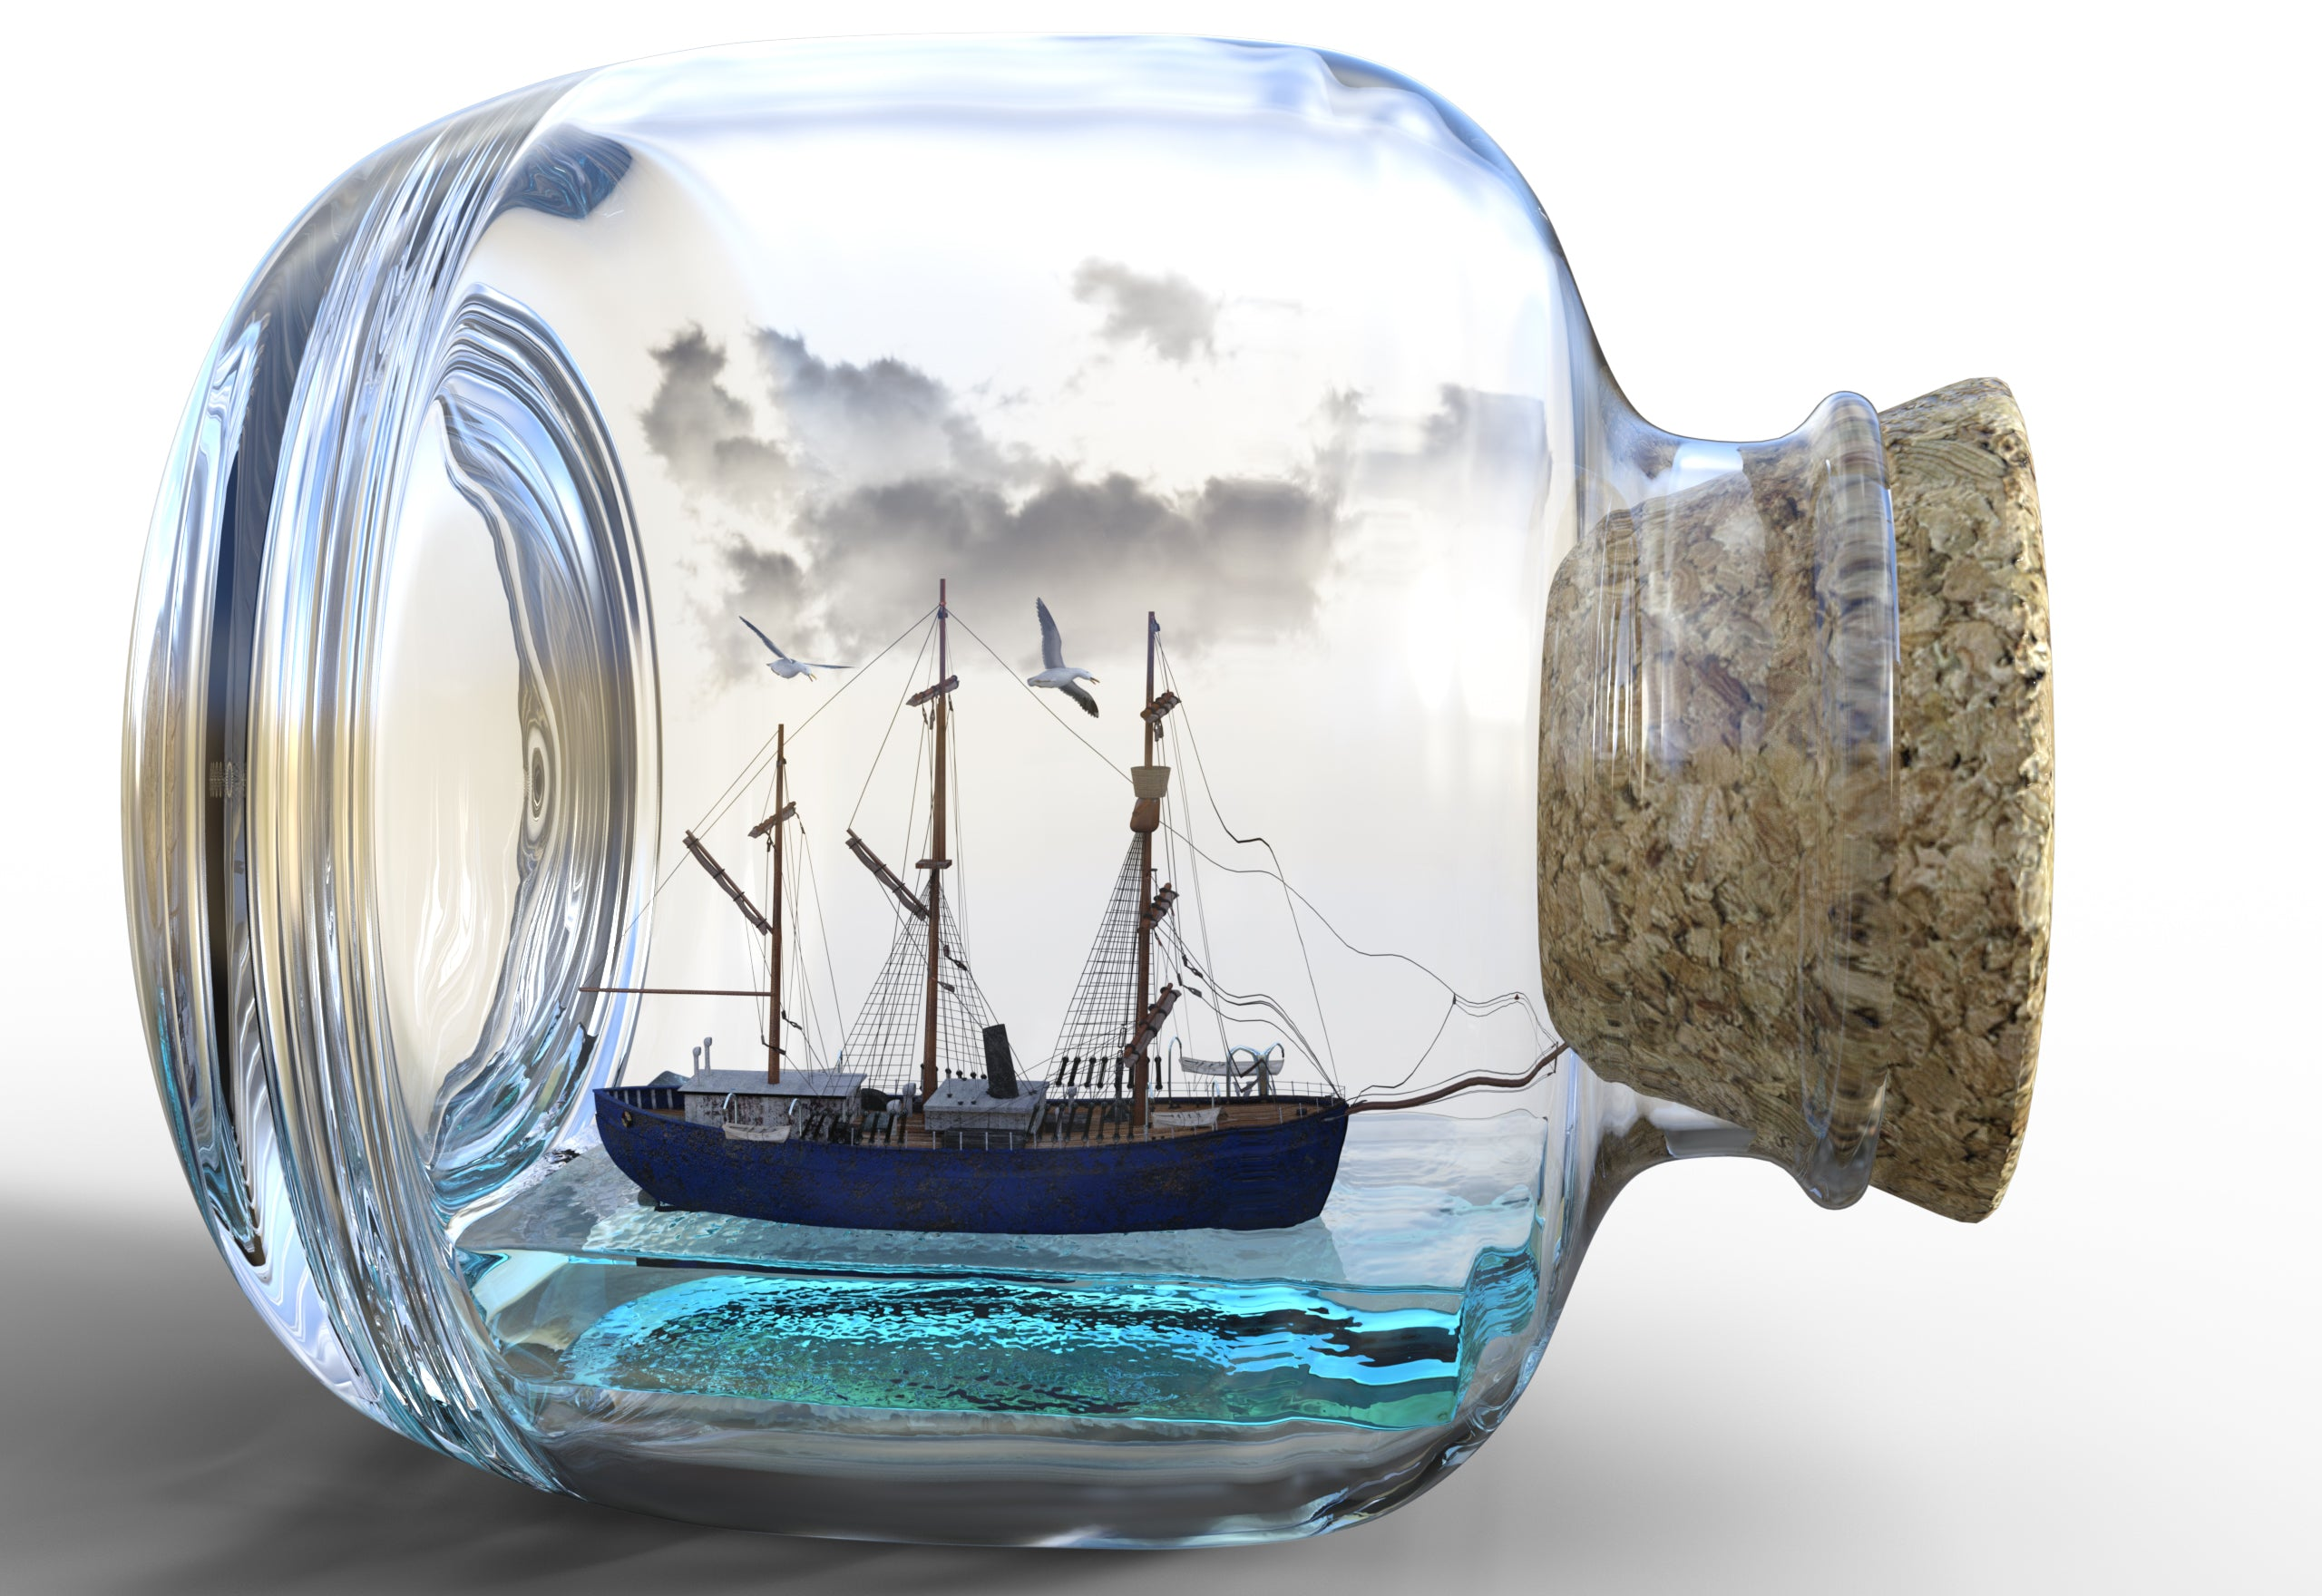 Glass Boat in a Bottle-DIY Diamond Painting